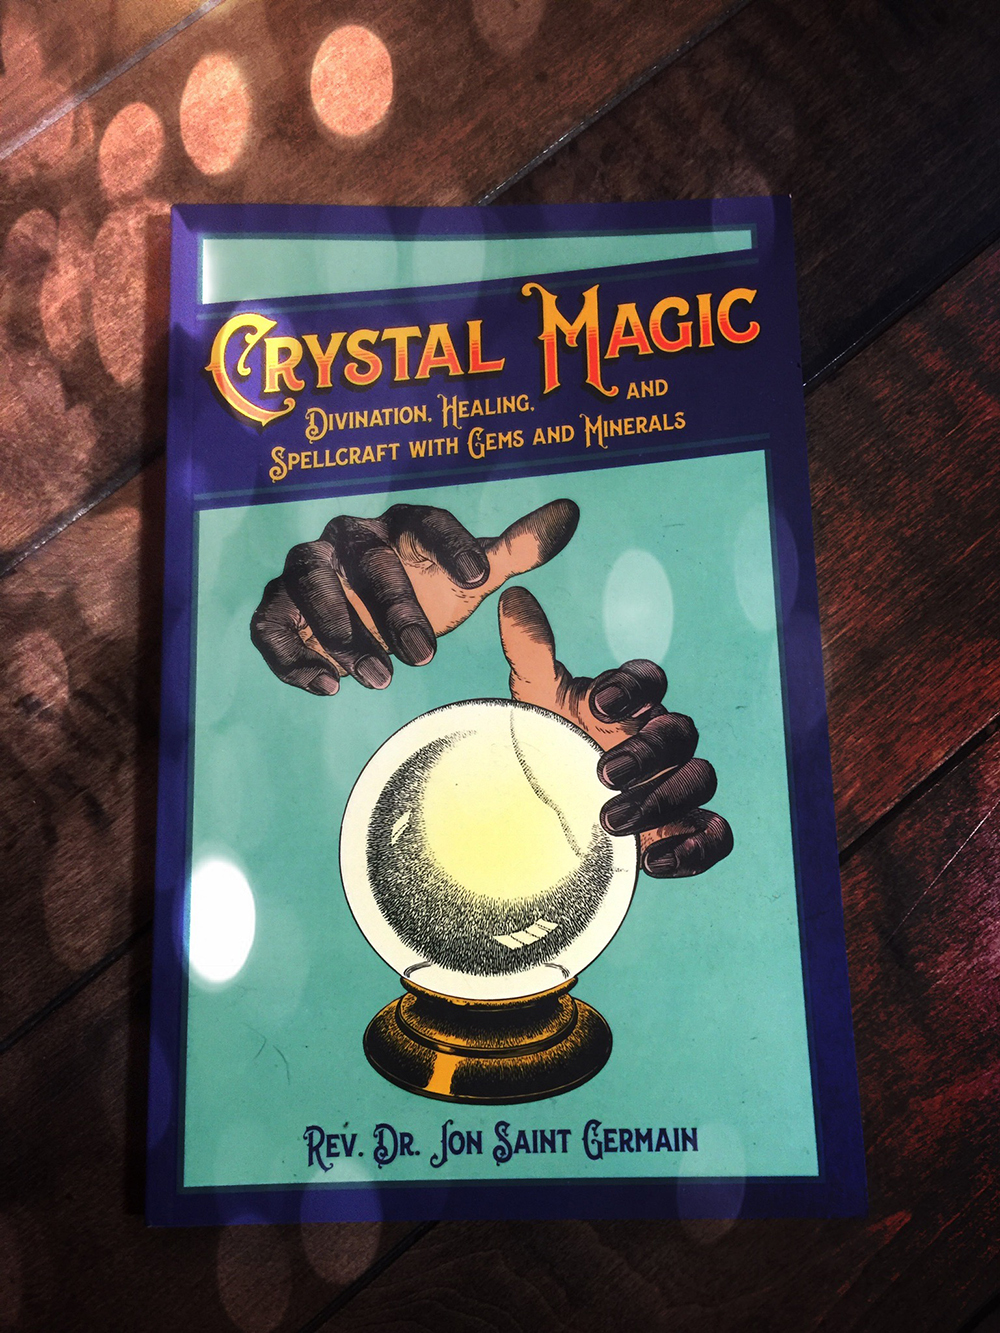 Crystal Magic: Divination, Healing, and Spellcraft with Gems and Minerals